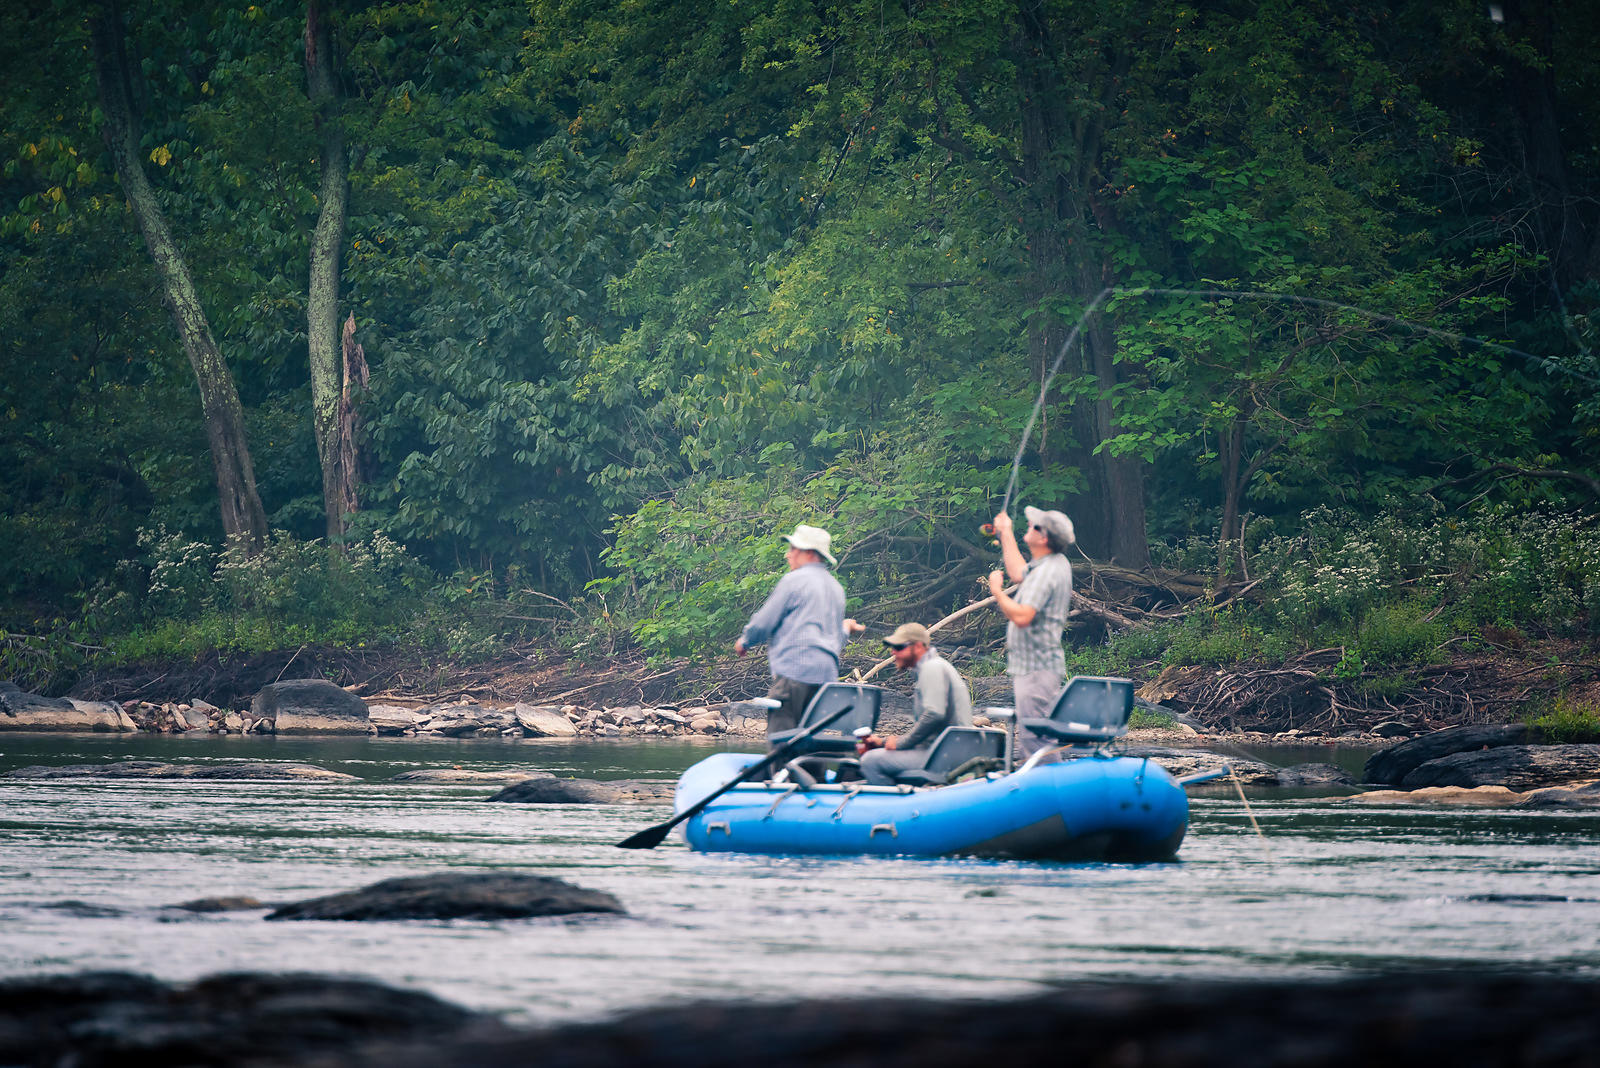 Fly fishing on the Potomac as the fog lifts #washingtoncounty #outdoors #flyfishing #rafting #potomacriver #harpersferry #gre...